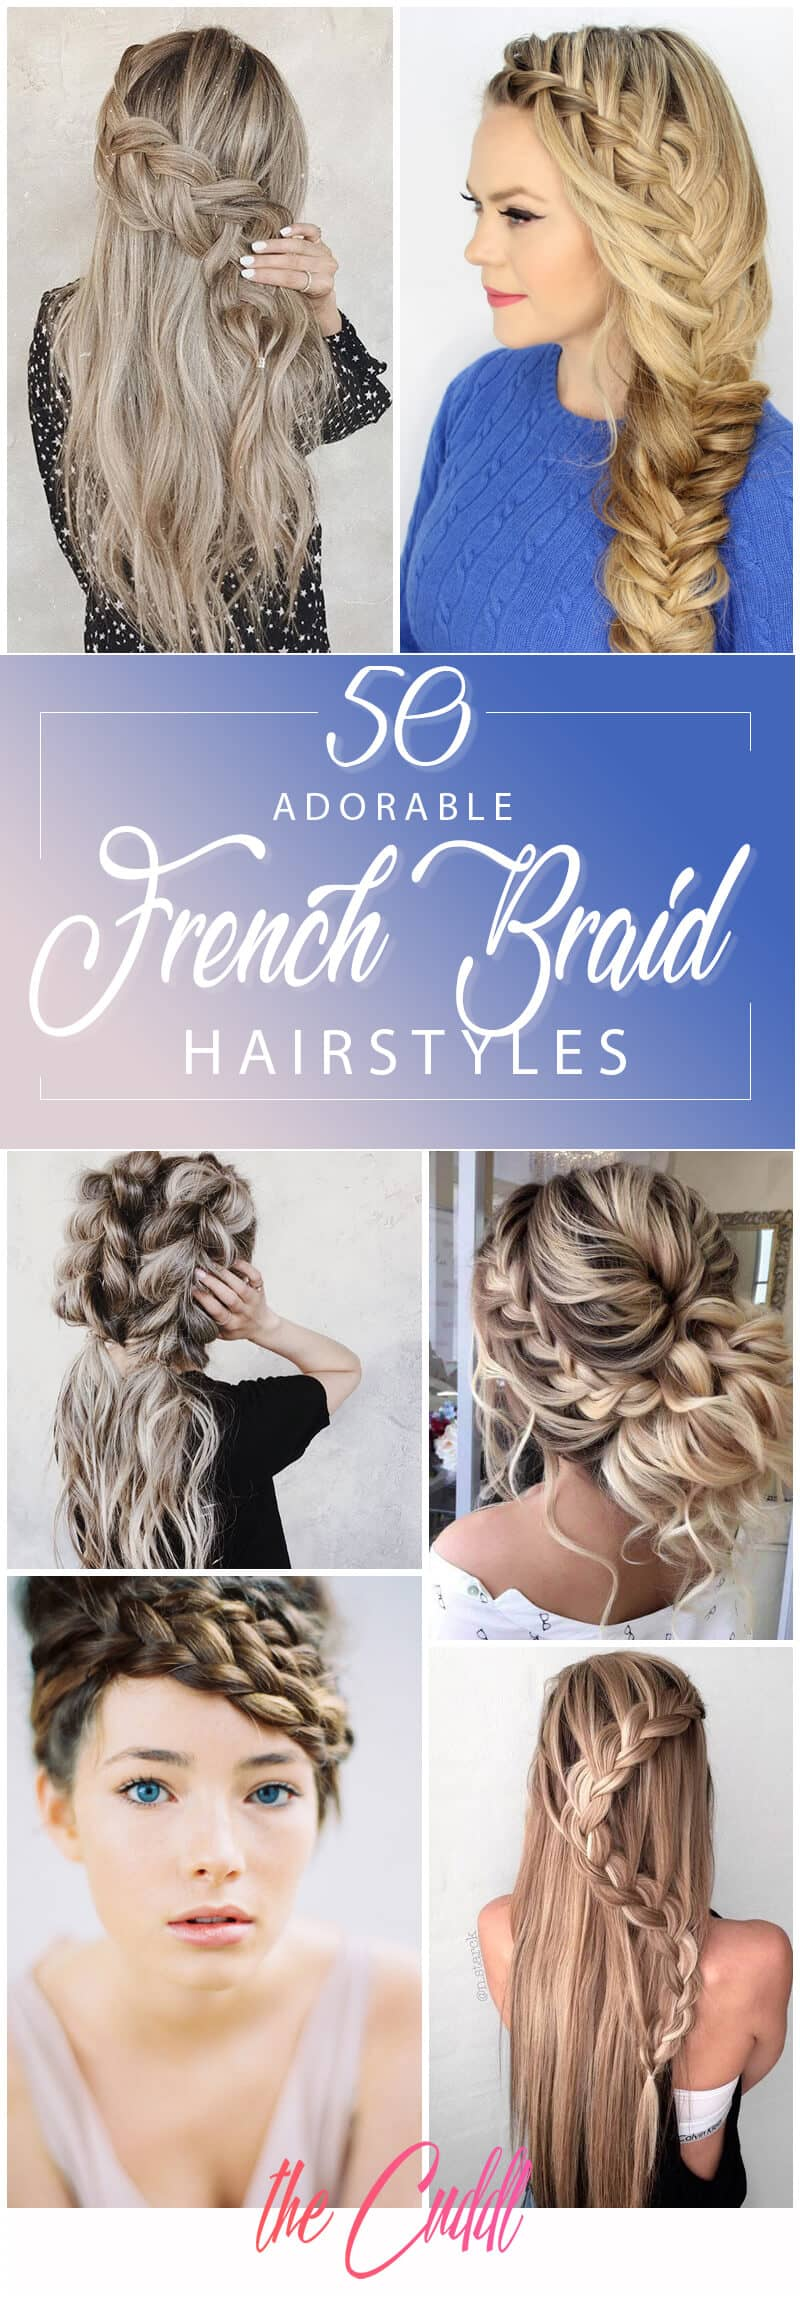 50 Inspiring Ideas for French Braid Hairstyles that Stand Out